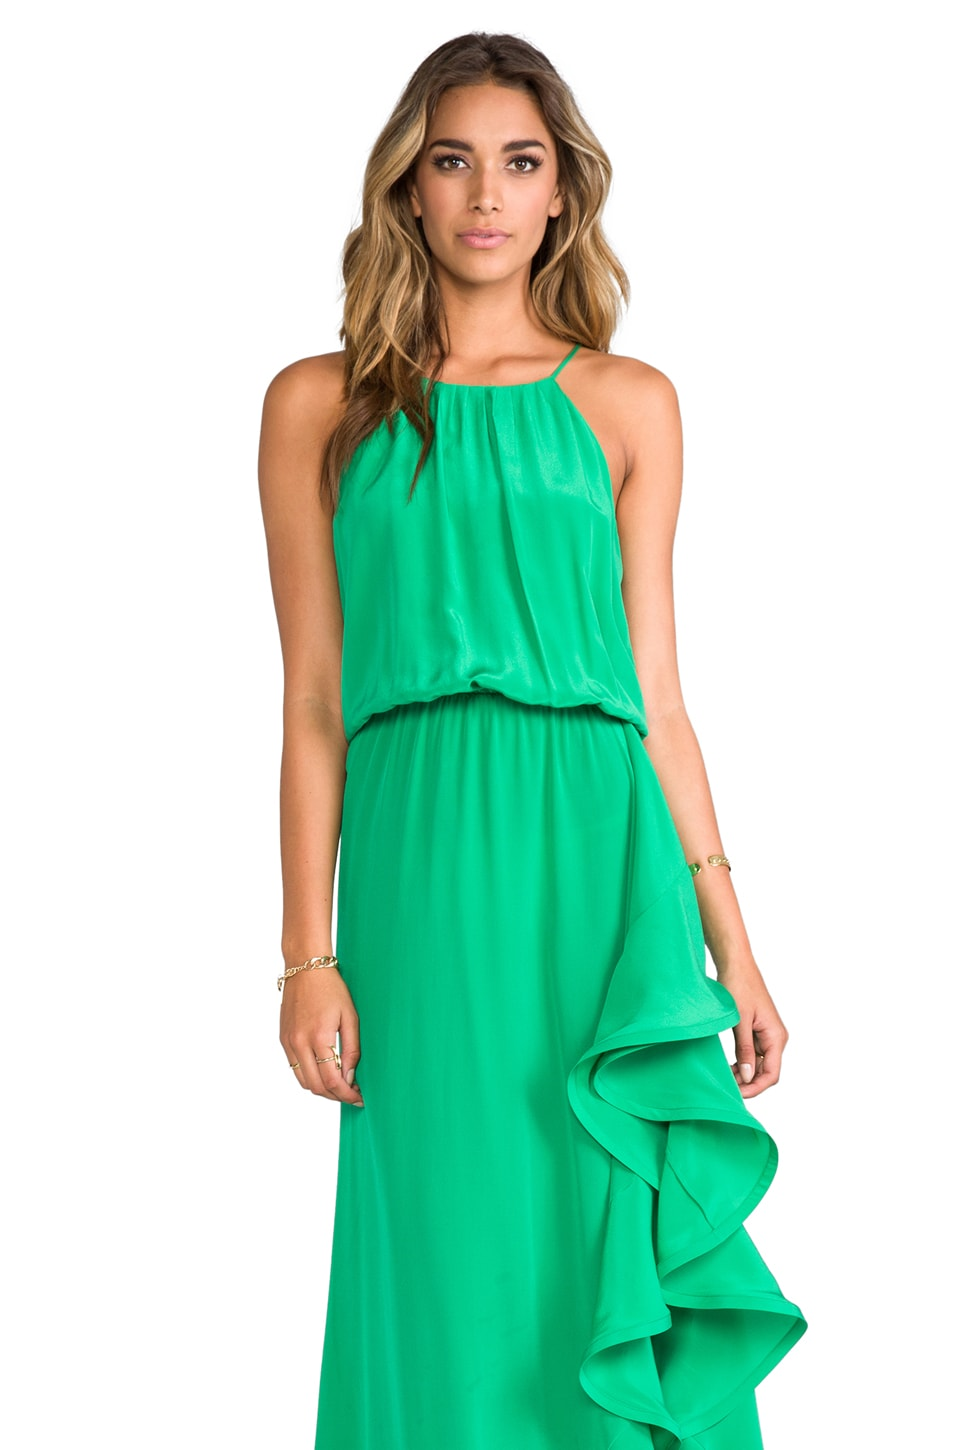 Alexis Mickael Long Dress With Ruffle in Green